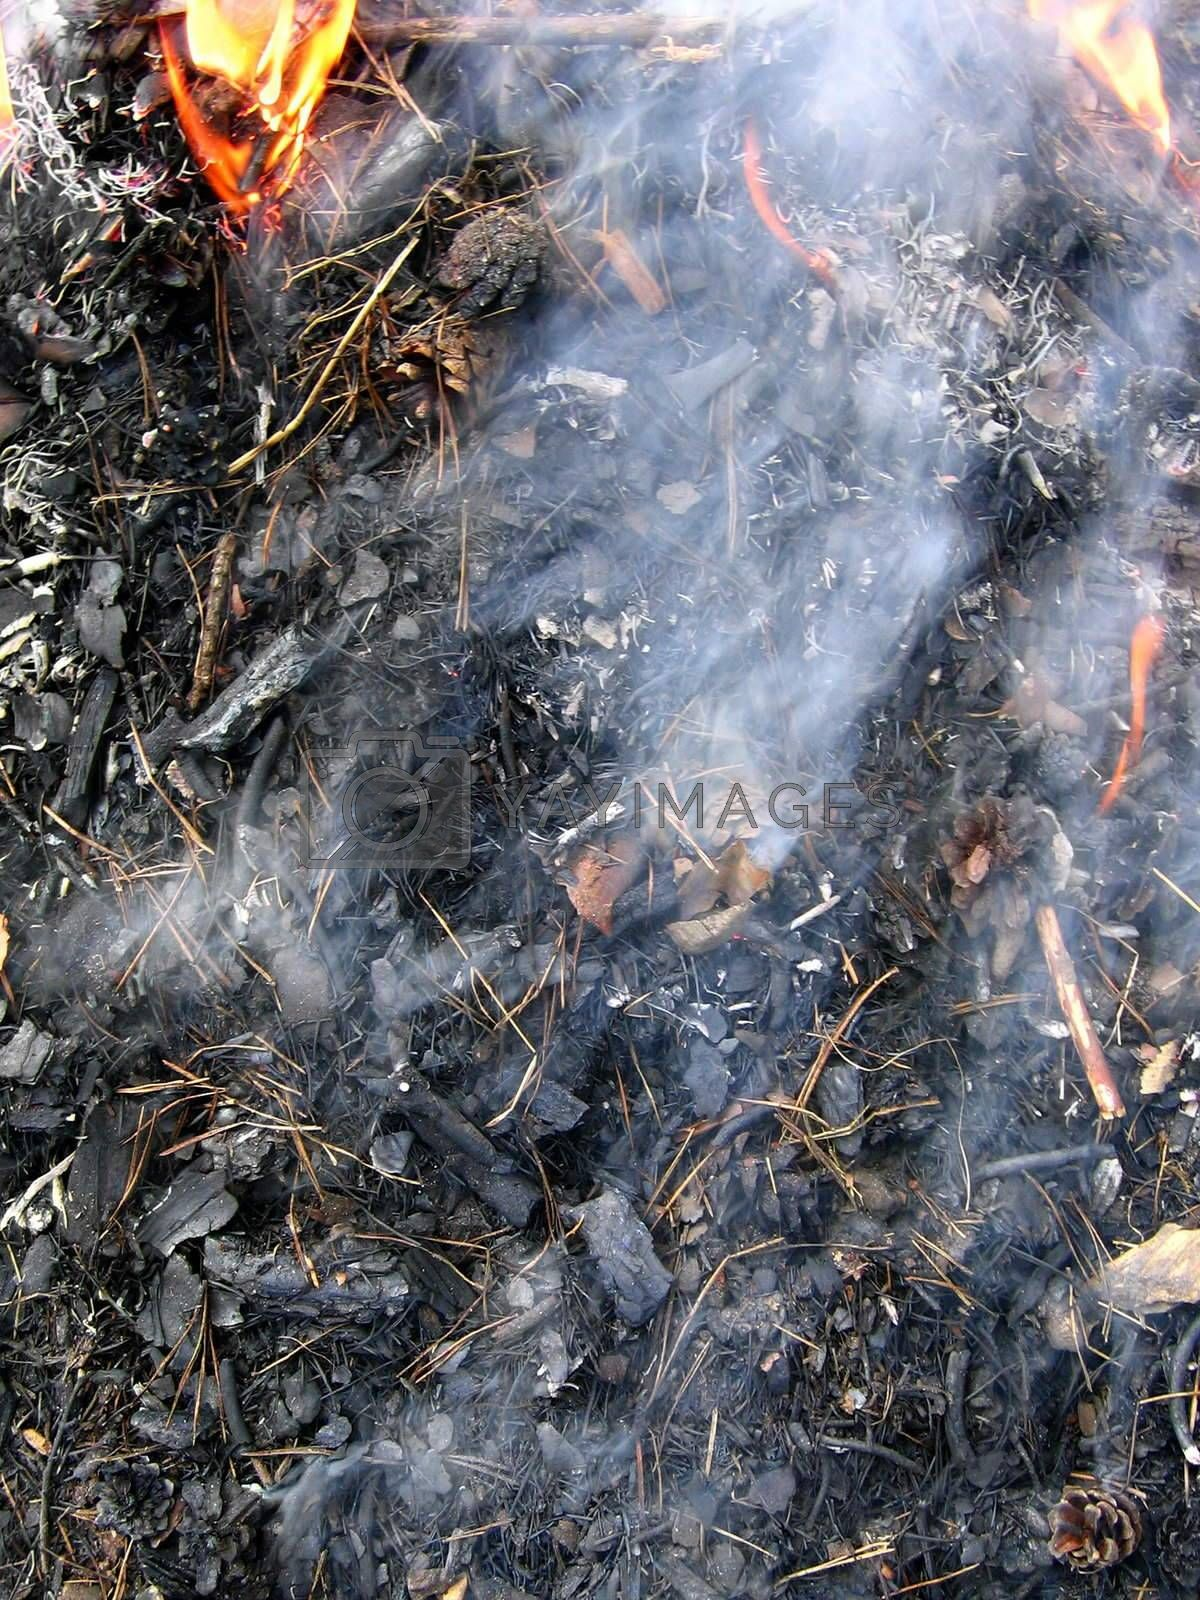 Burning wood laying - cones, dry needles and a grass in flame